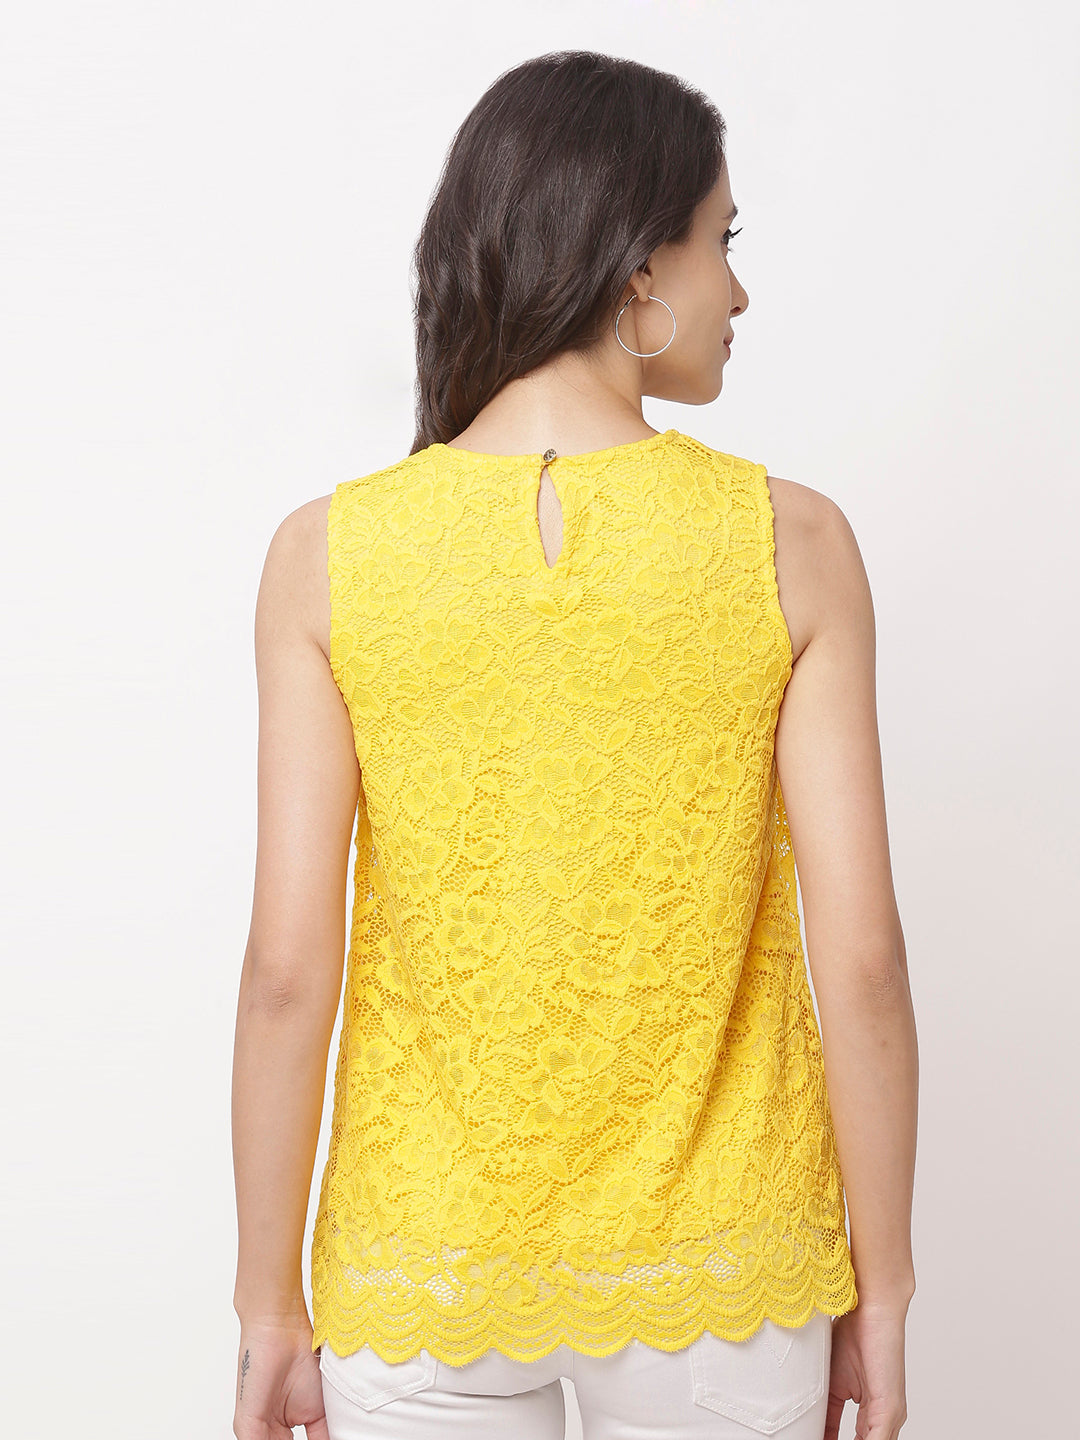 Globus Yellow Round Neck Self Design Top-3